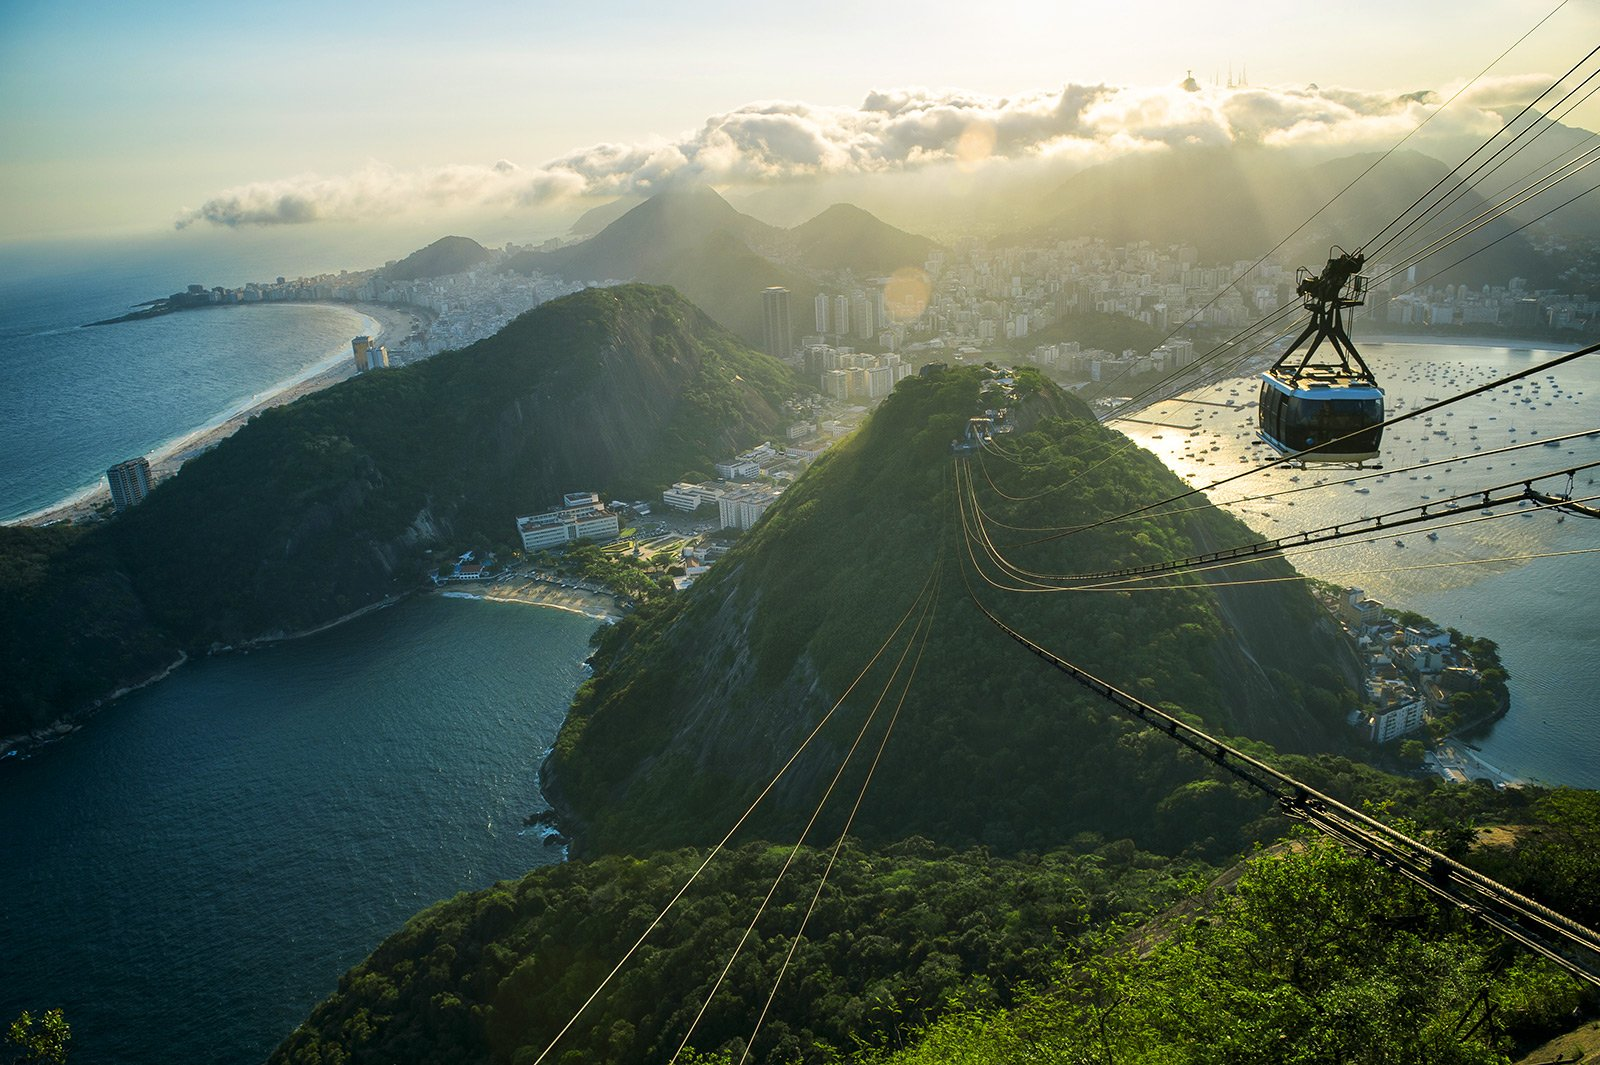 How to climb the top of Sugarloaf by the cableway in Rio de Janeiro